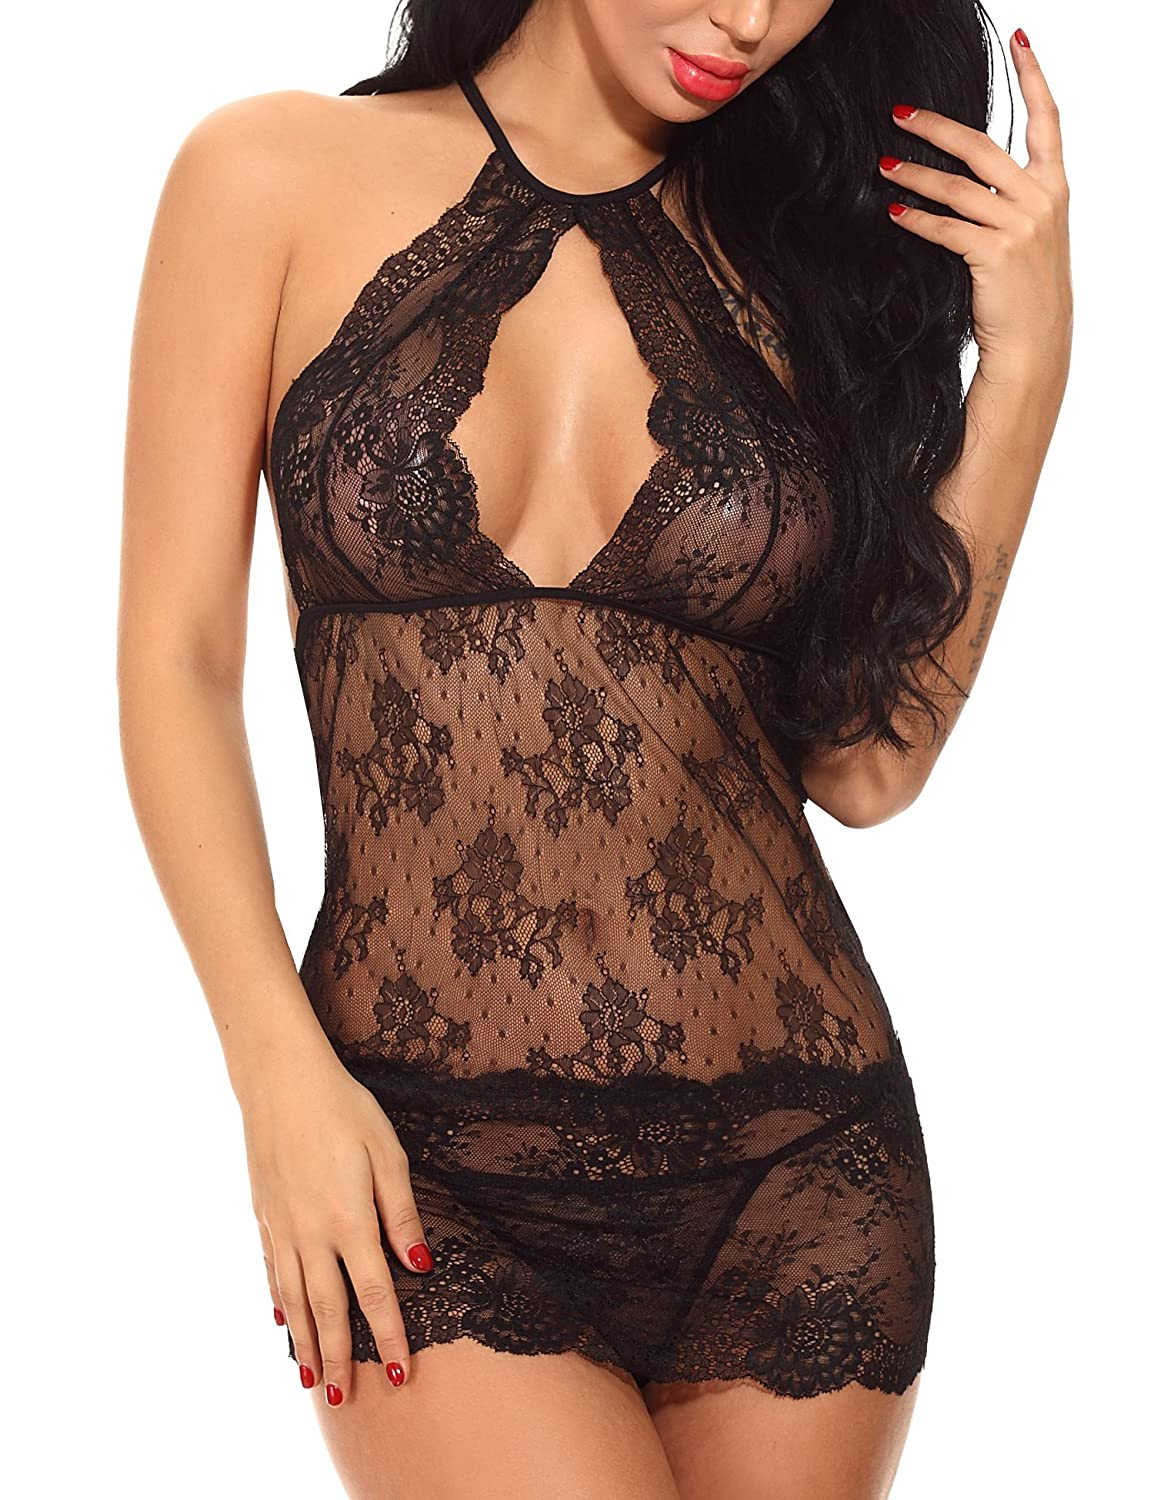 2808b8e05 Top 10 wholesale Women Wearing Lingerie - Chinabrands.com